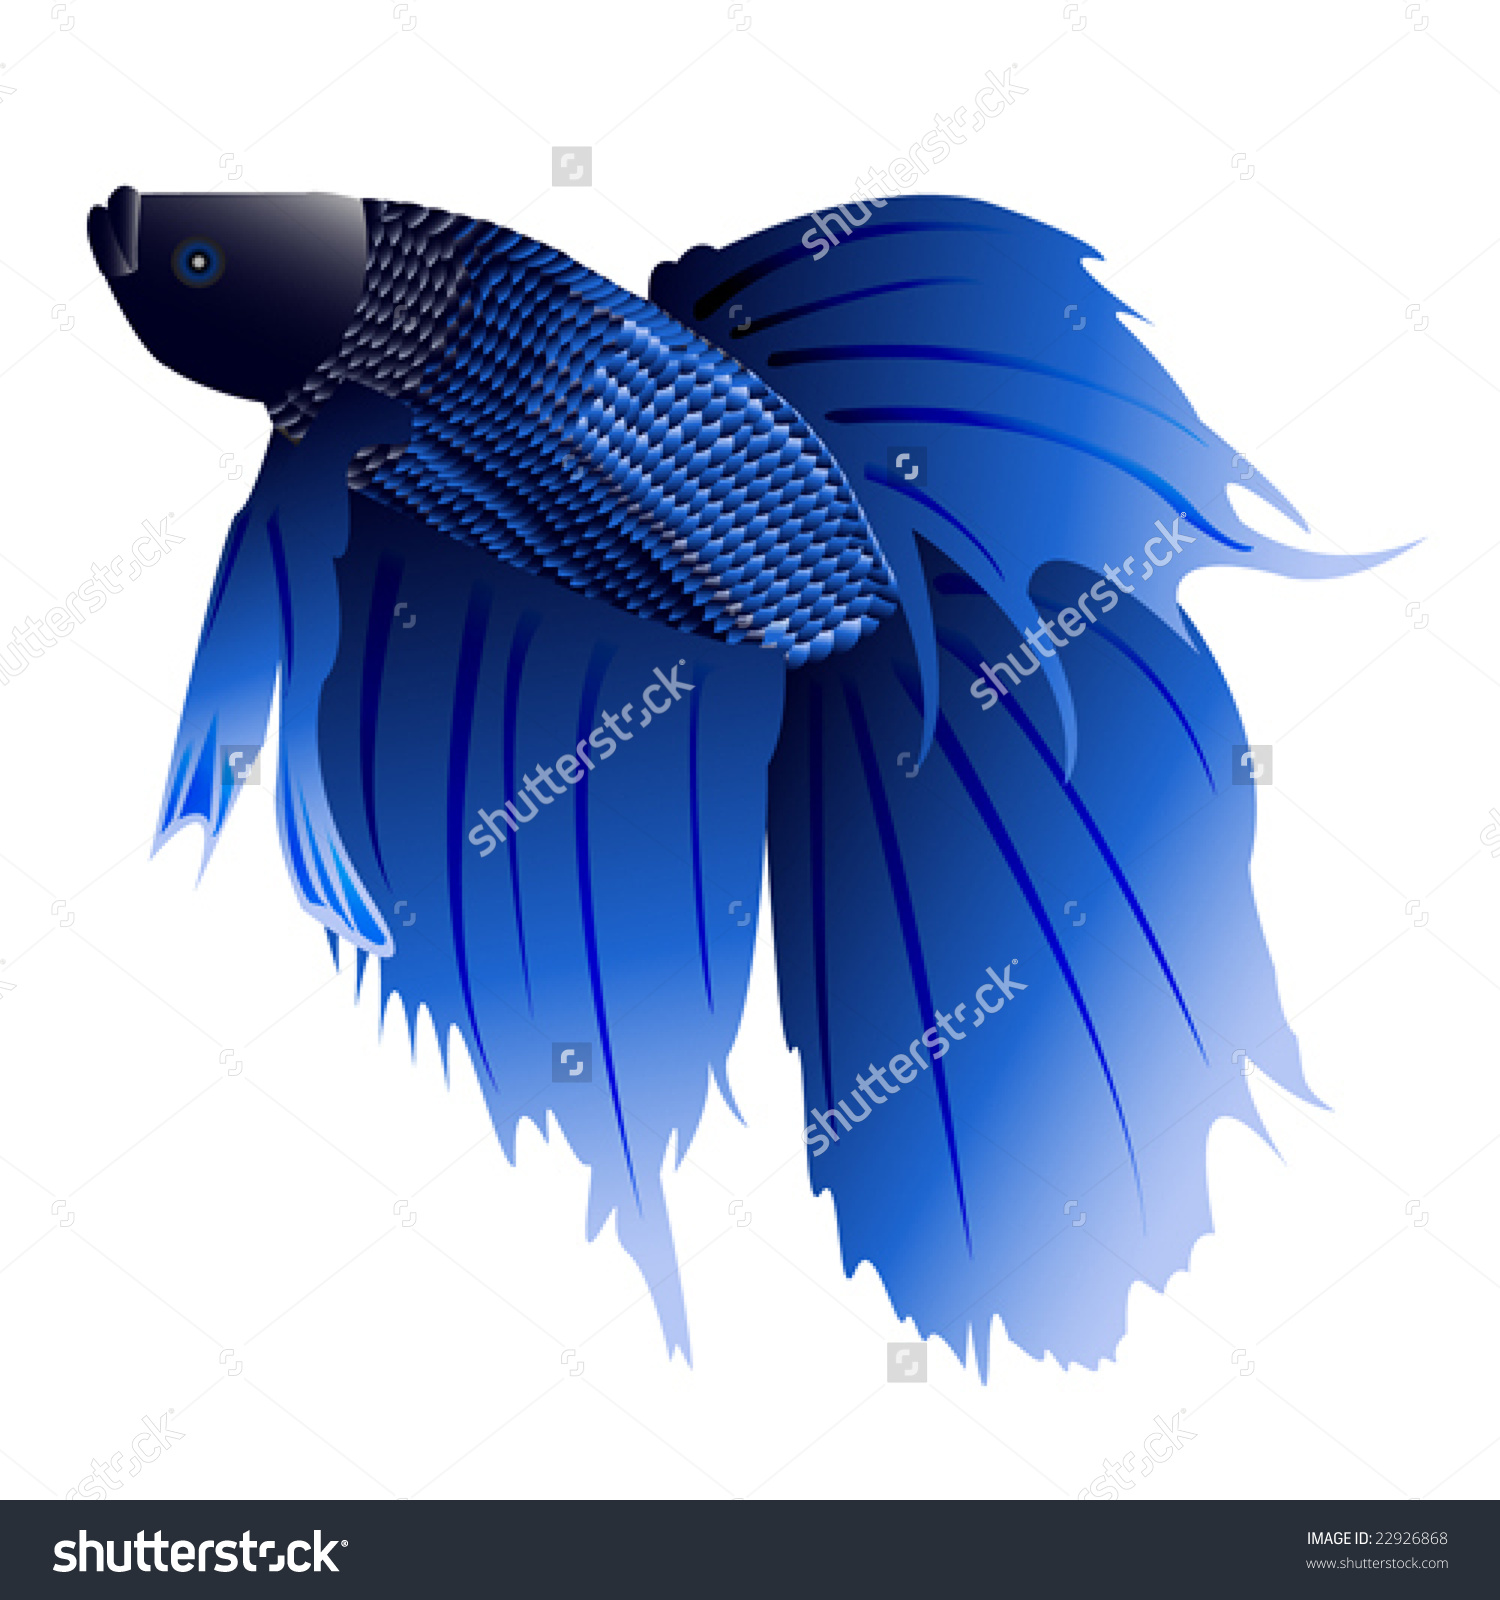 Siamese Fighting Fish clipart #19, Download drawings